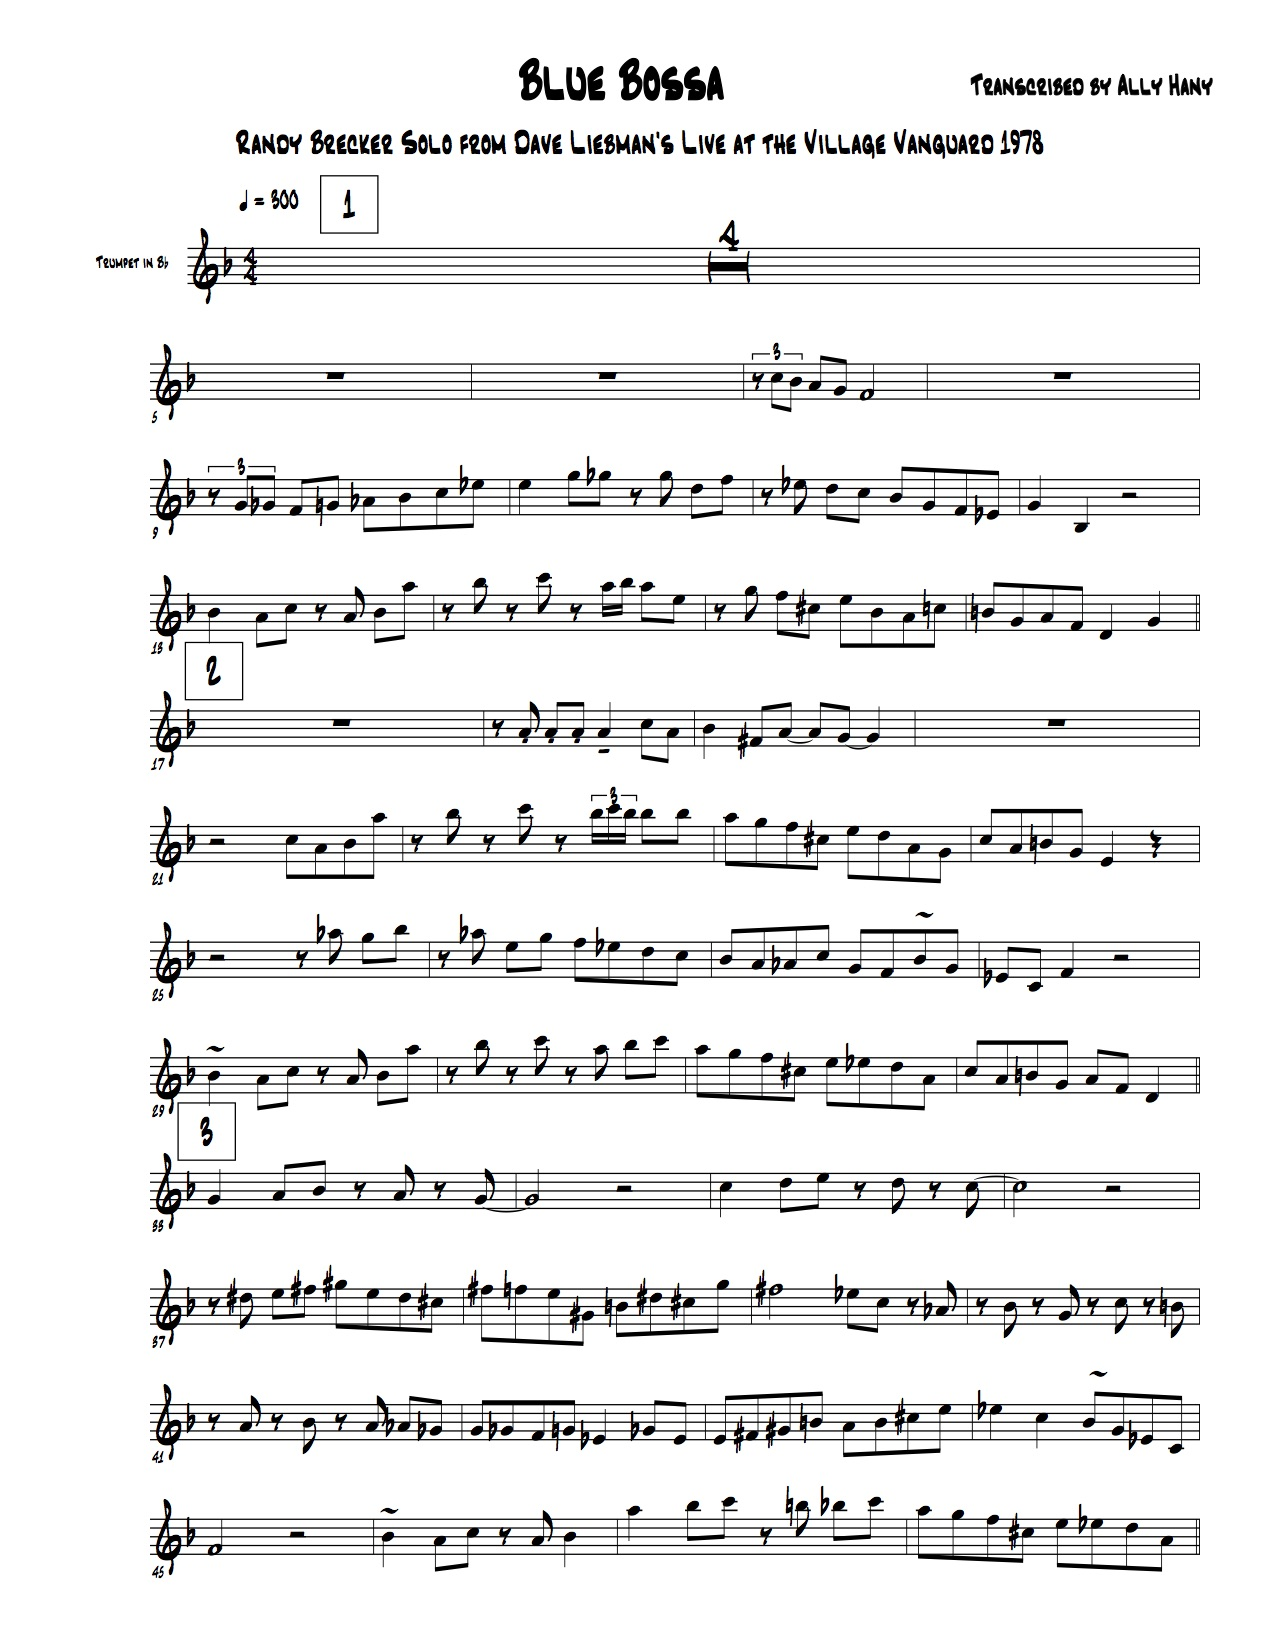 Blue Bossa Transcription 1.jpg